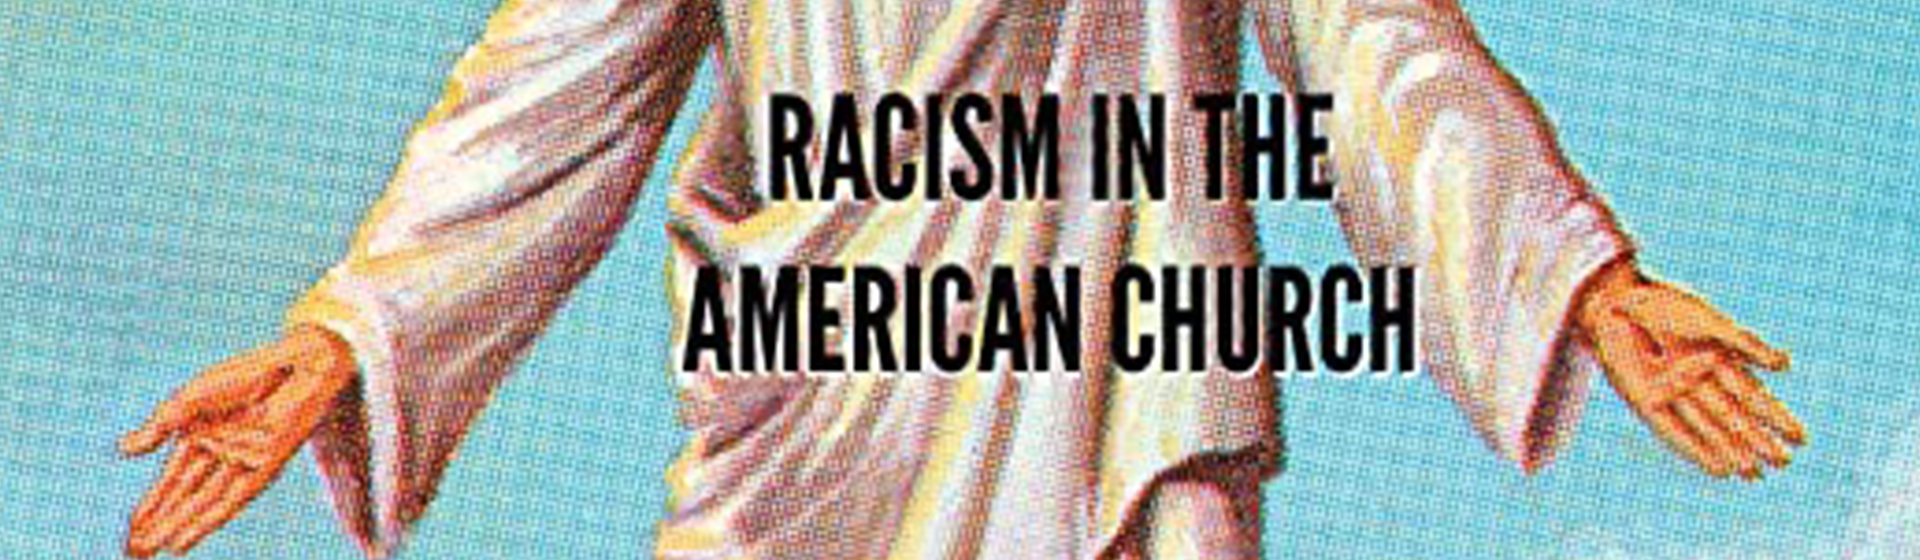 Racism_in_the_American_Church